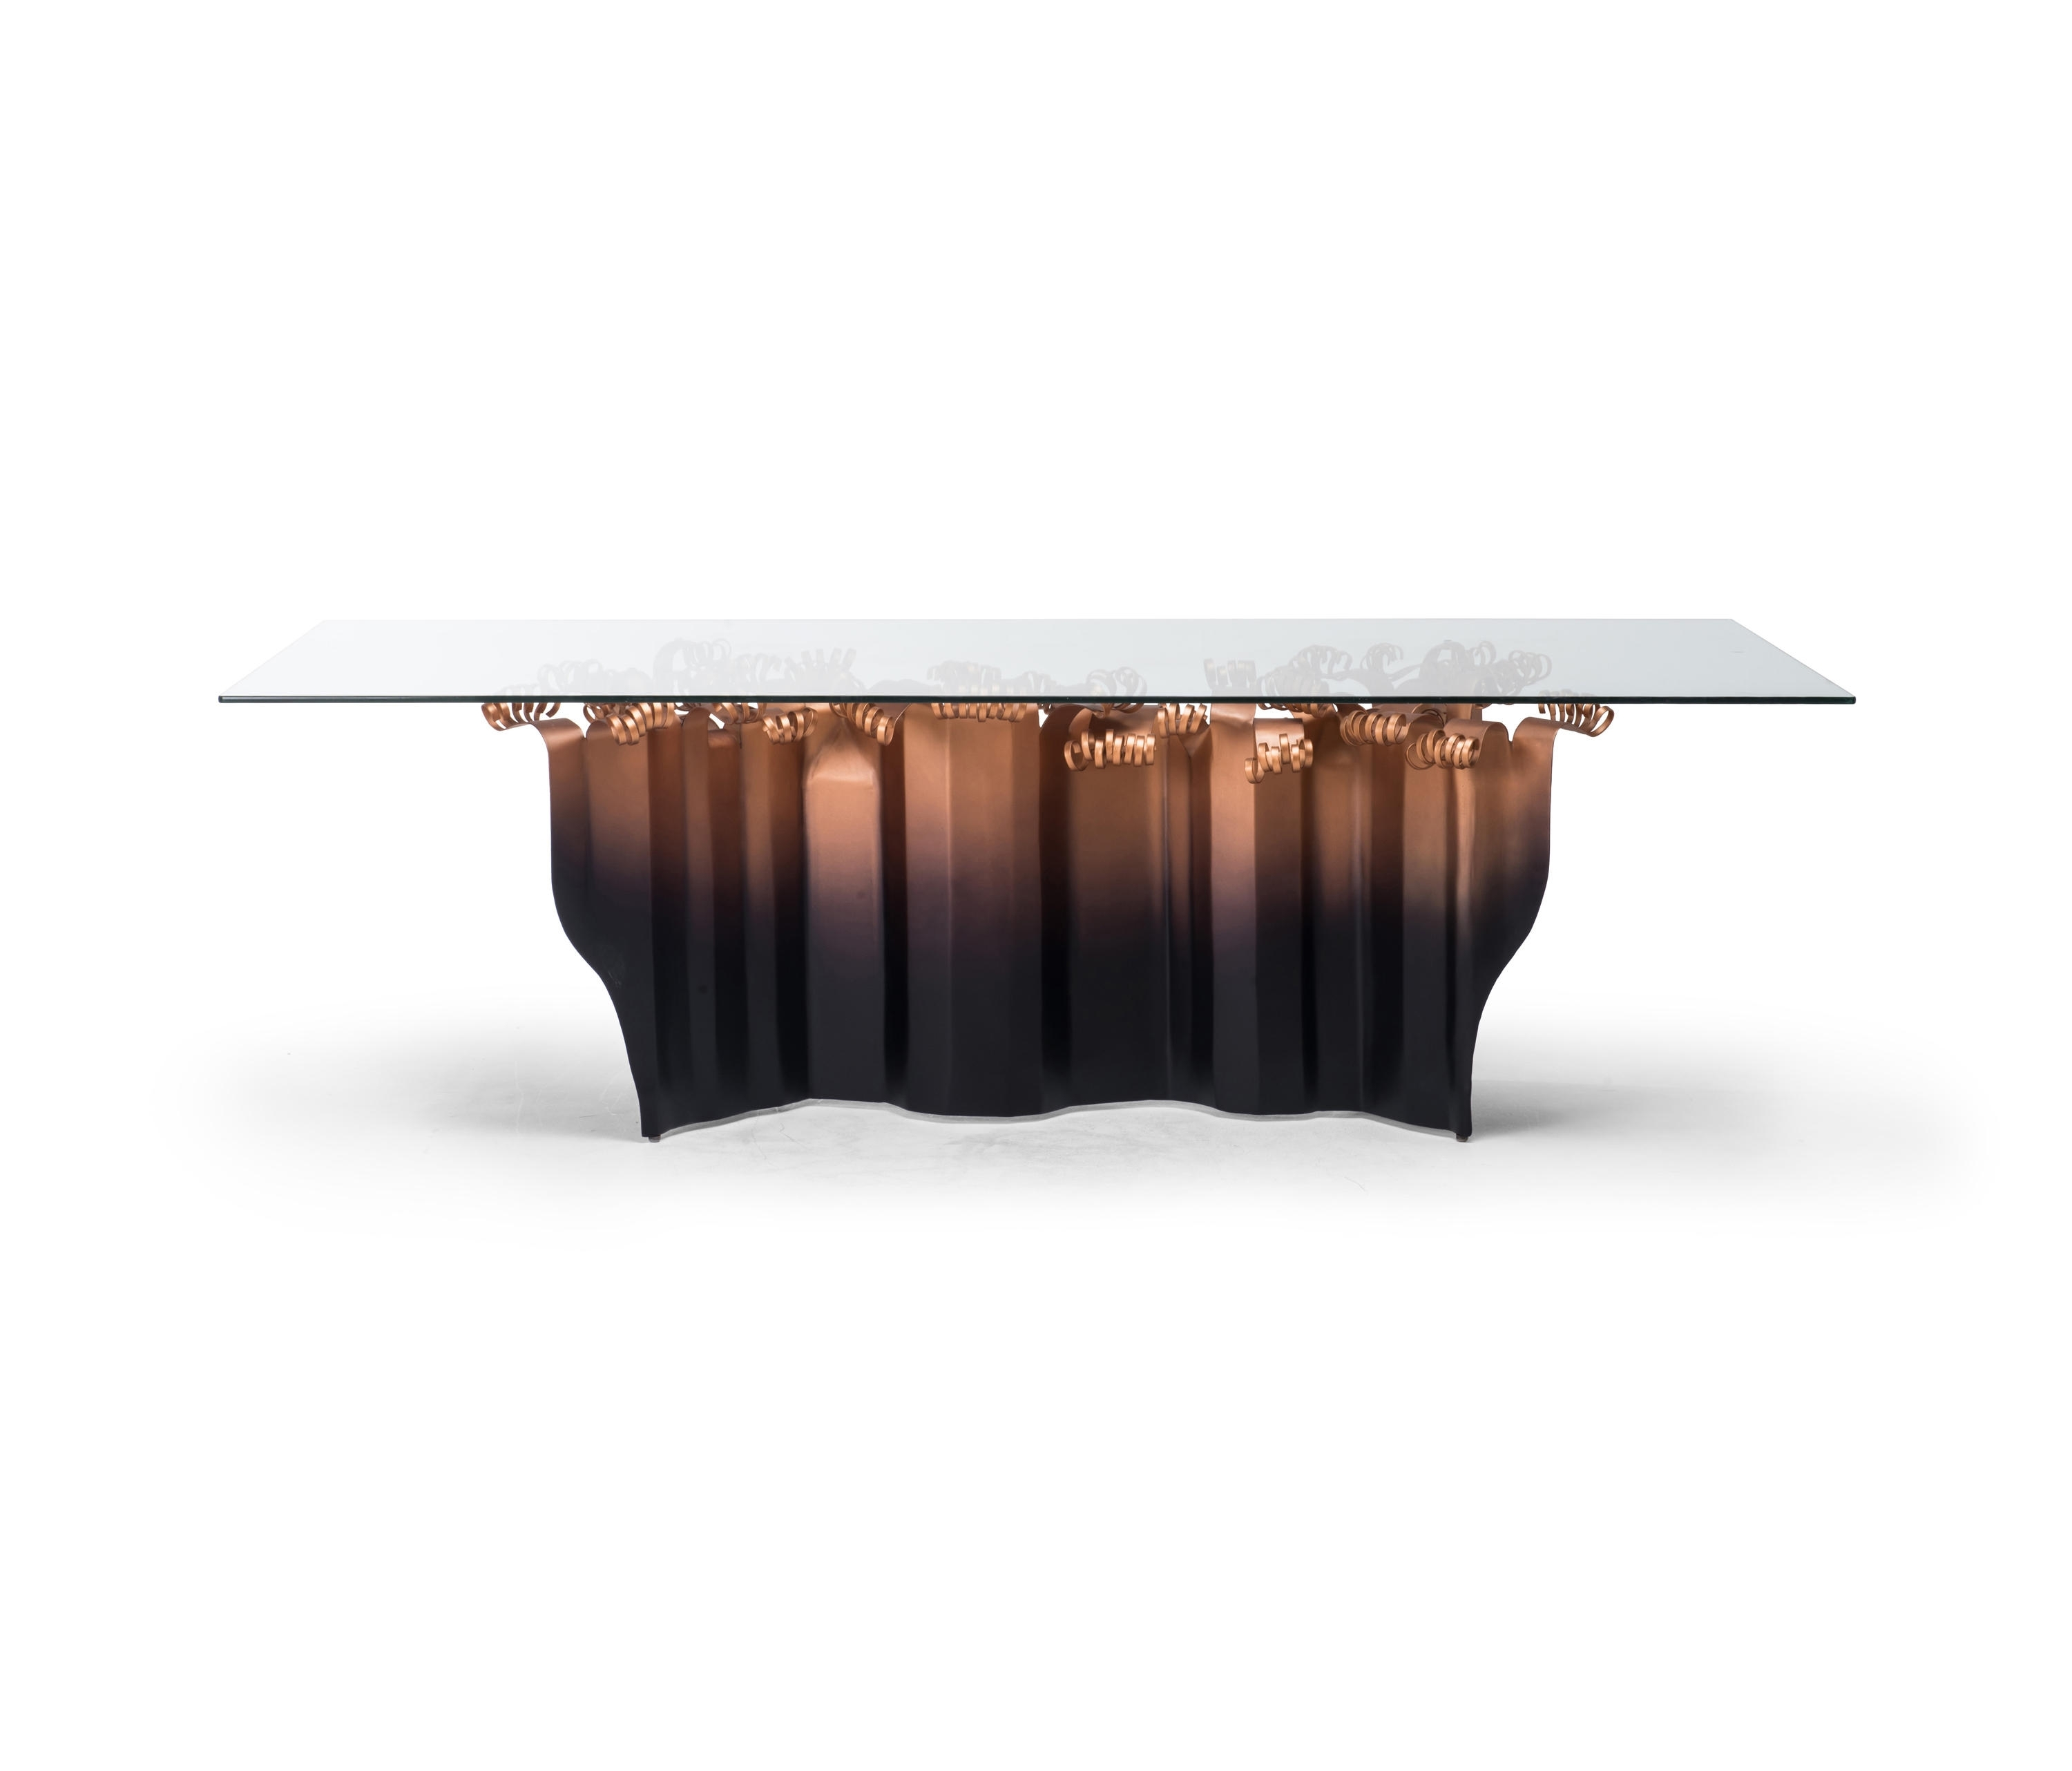 Vivo Dining Table – Dining Tables From Kenneth Cobonpue | Architonic Regarding 2017 Artisanal Dining Tables (View 18 of 20)